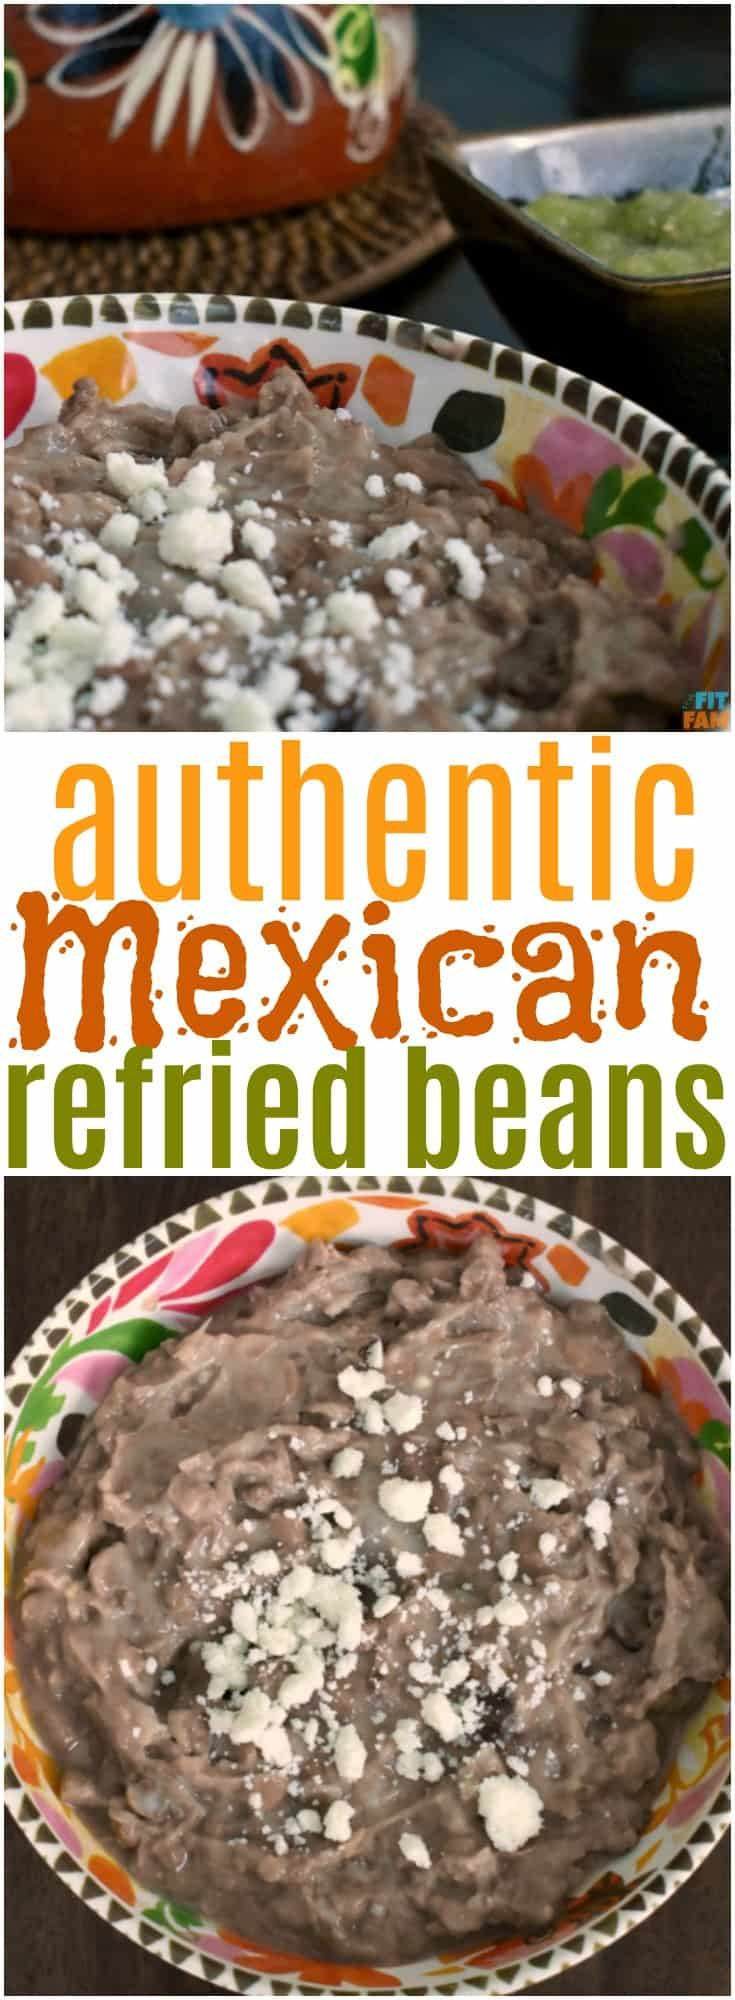 Authentic Mexican Refried Beans That Fit Fam